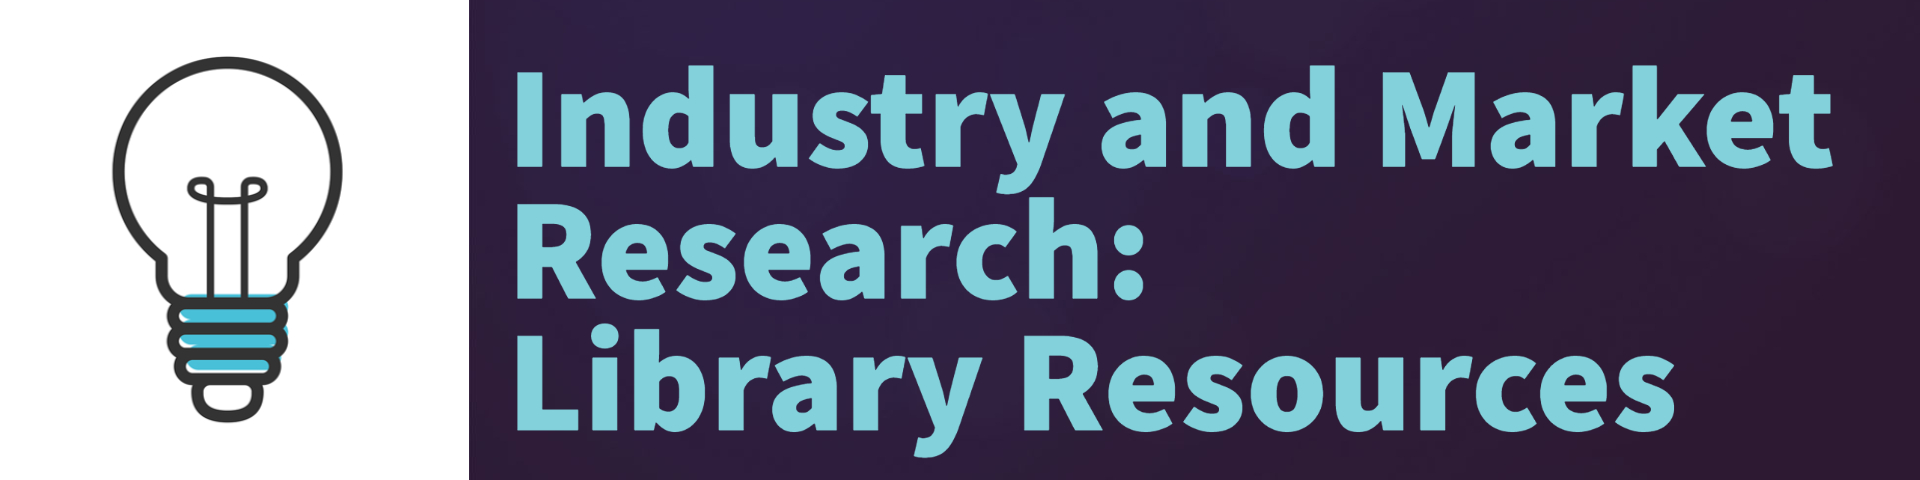 Industry and Market Research: Library Resources